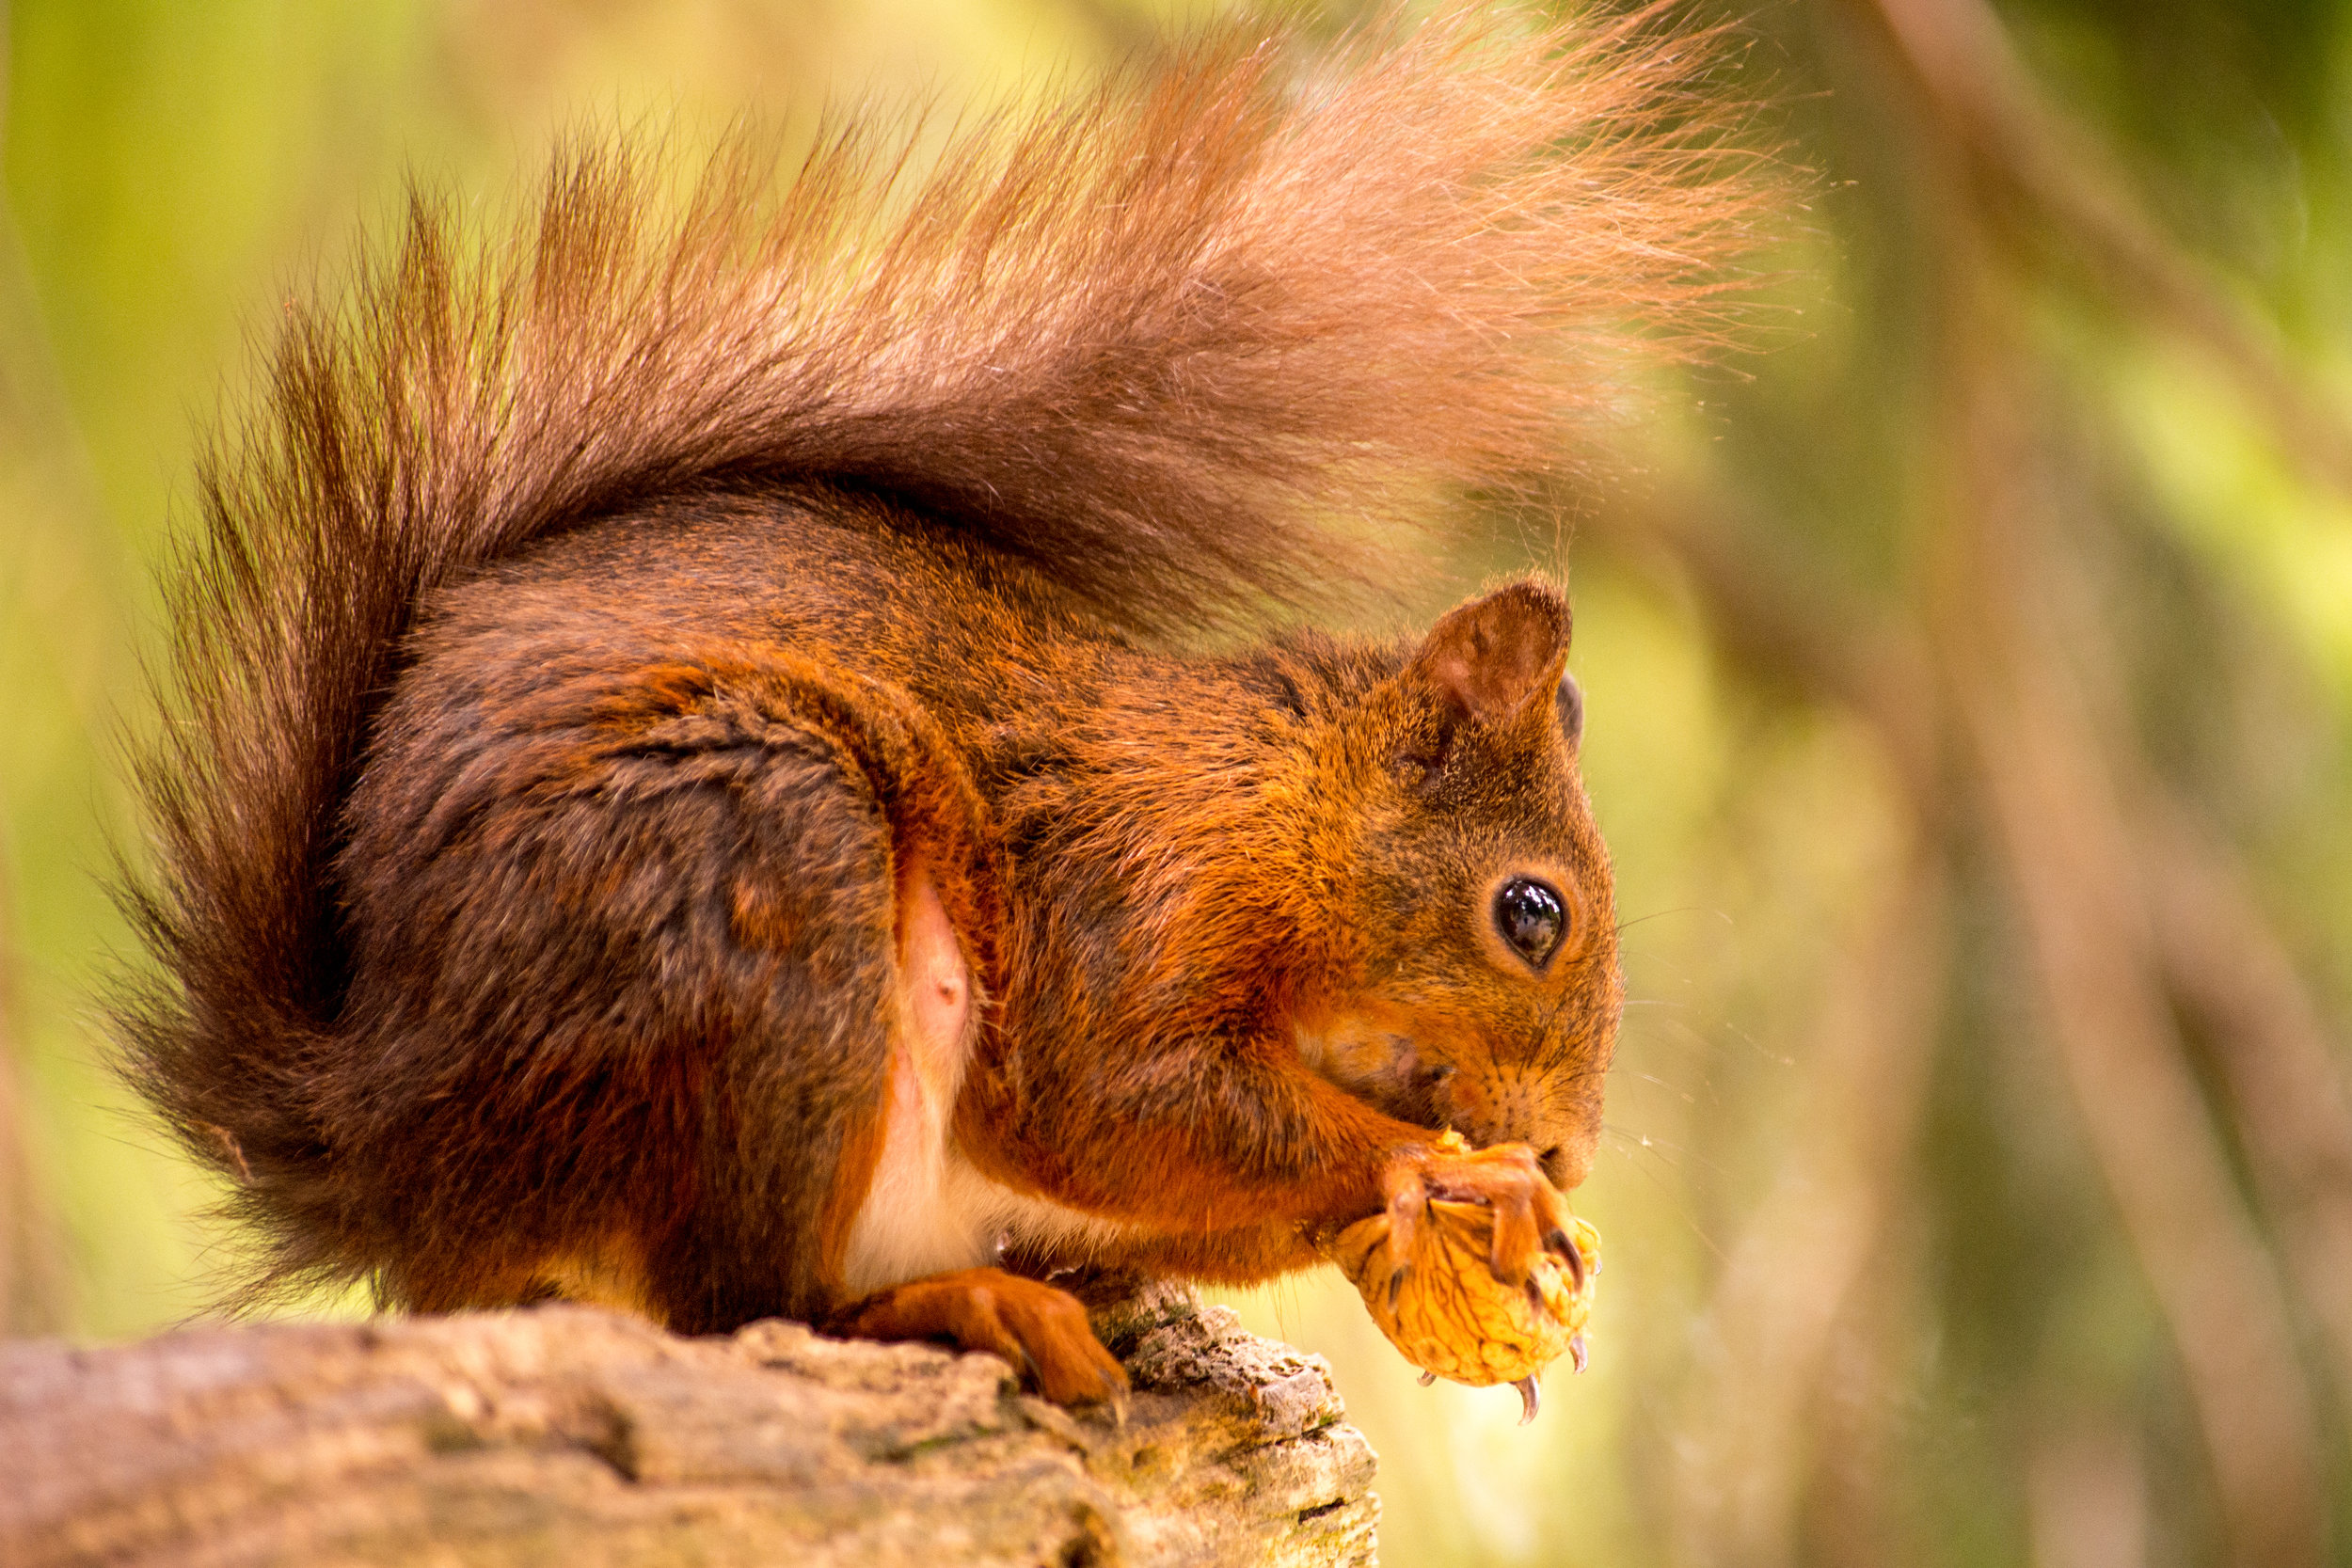 Red Squirrel eating walnut